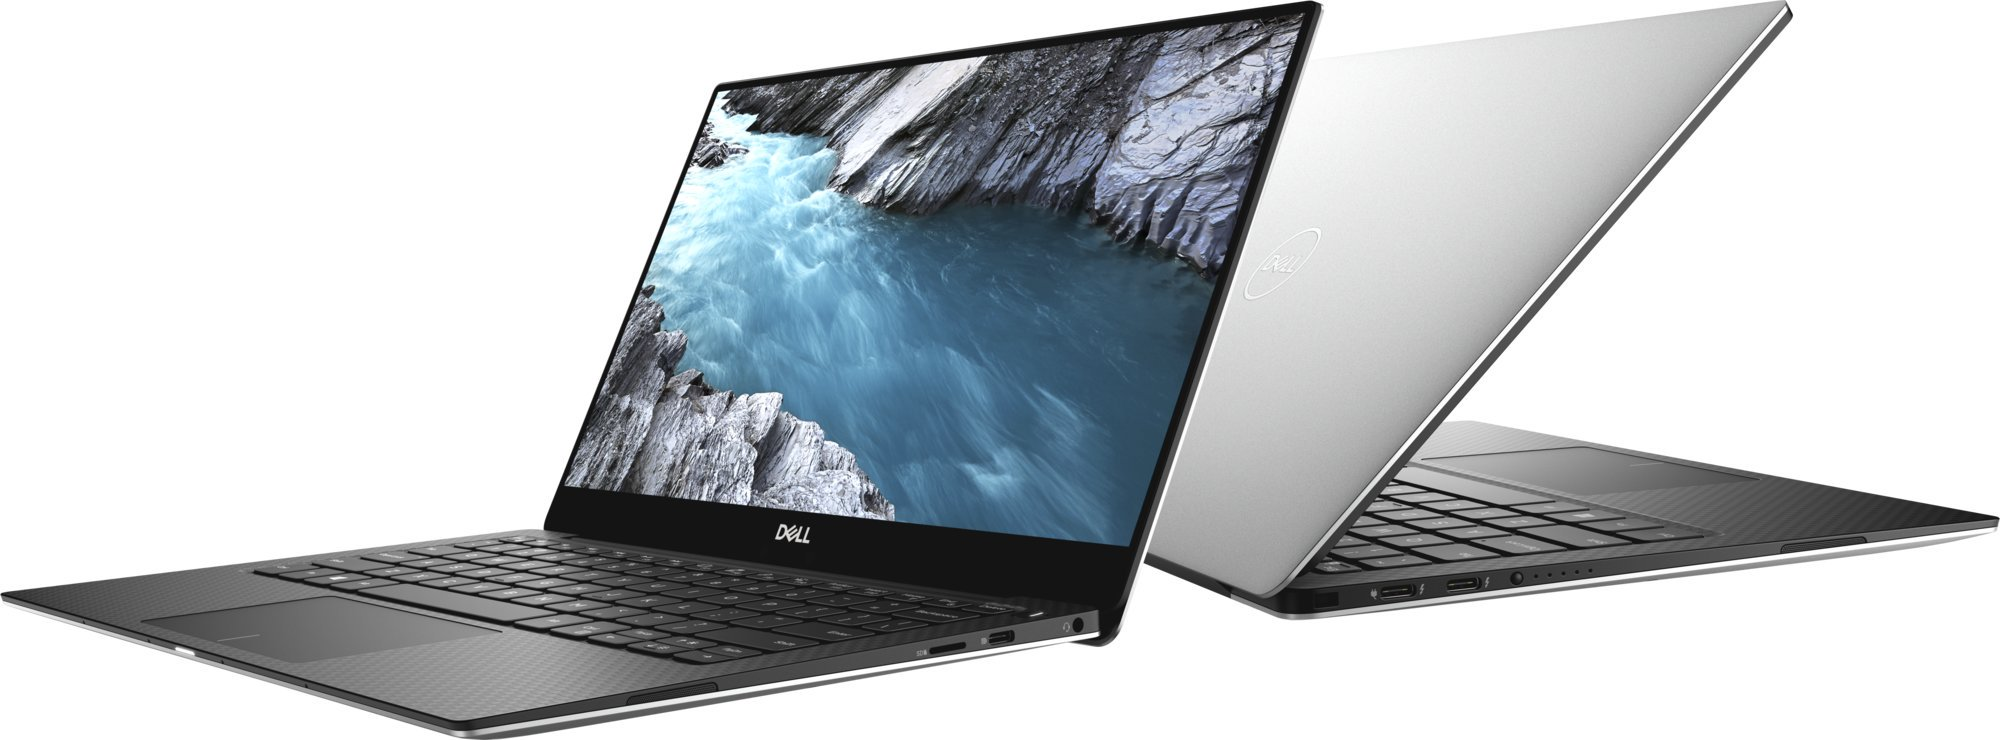 Dell XPS 13 - 9370